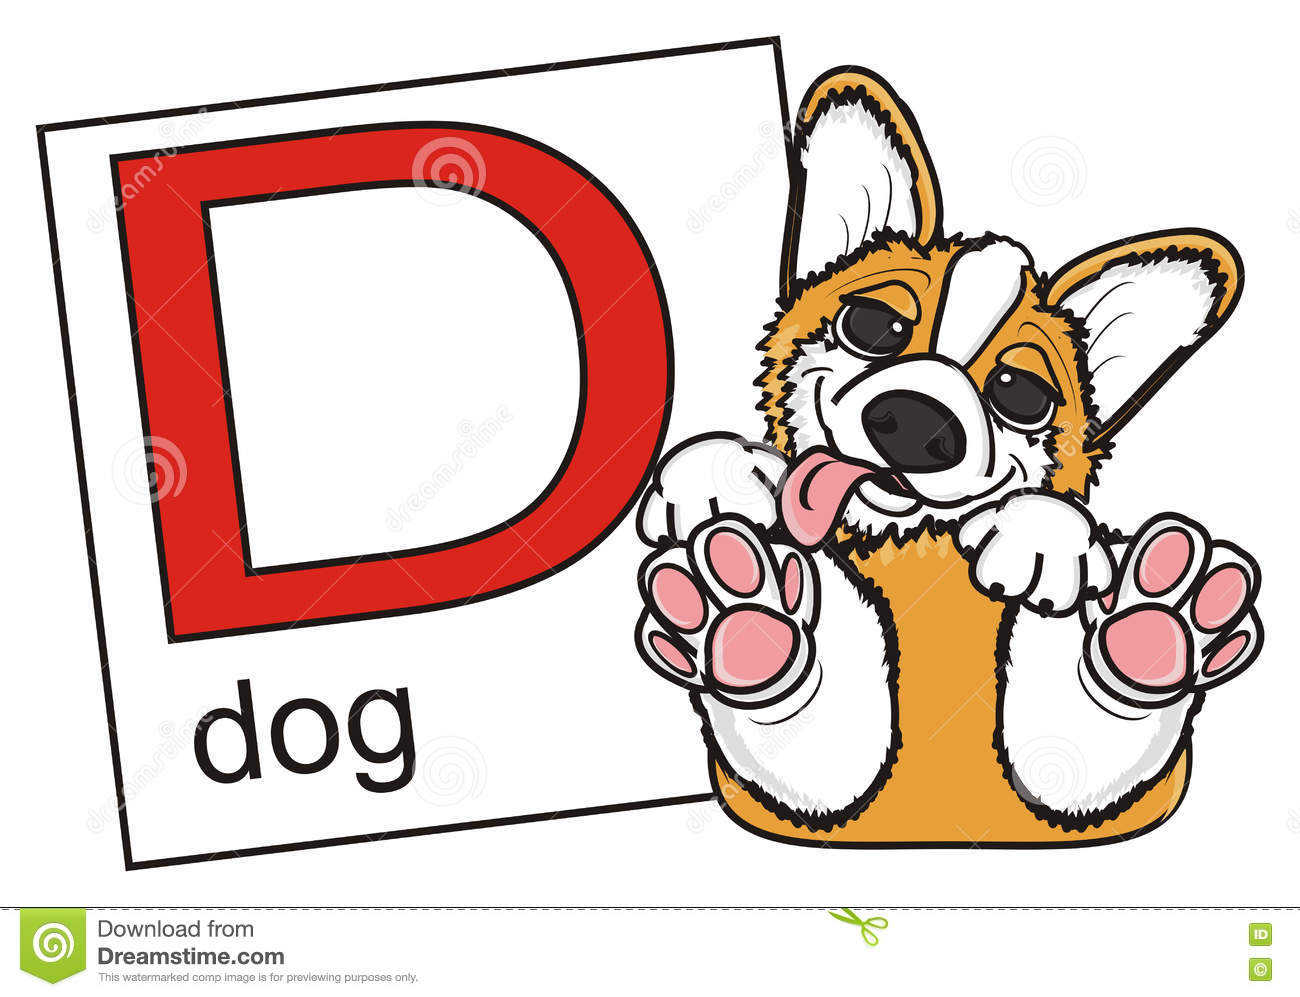 Corgi and a card with the letter D